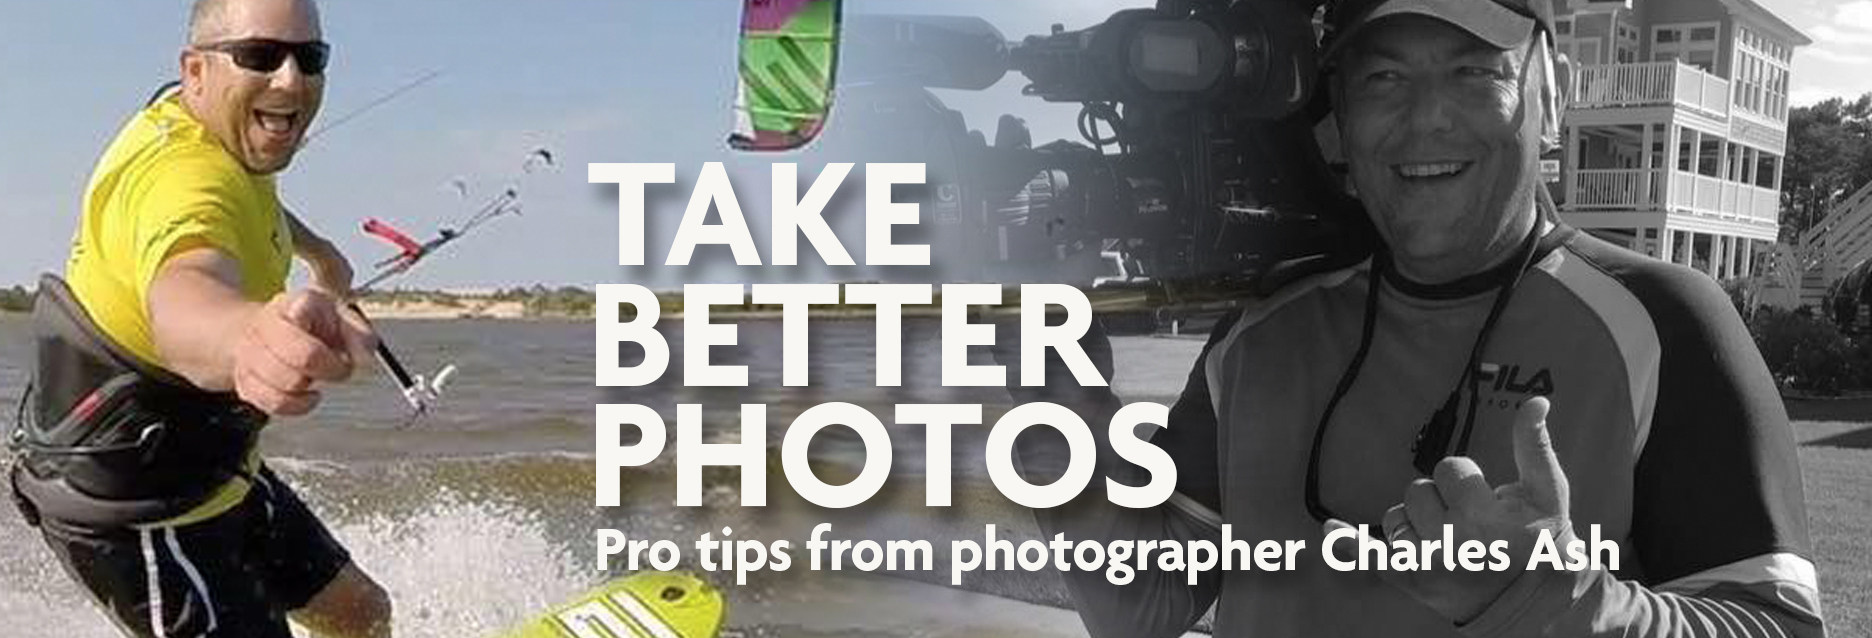 Take better photos - Pro tips from photographer Charles Ash